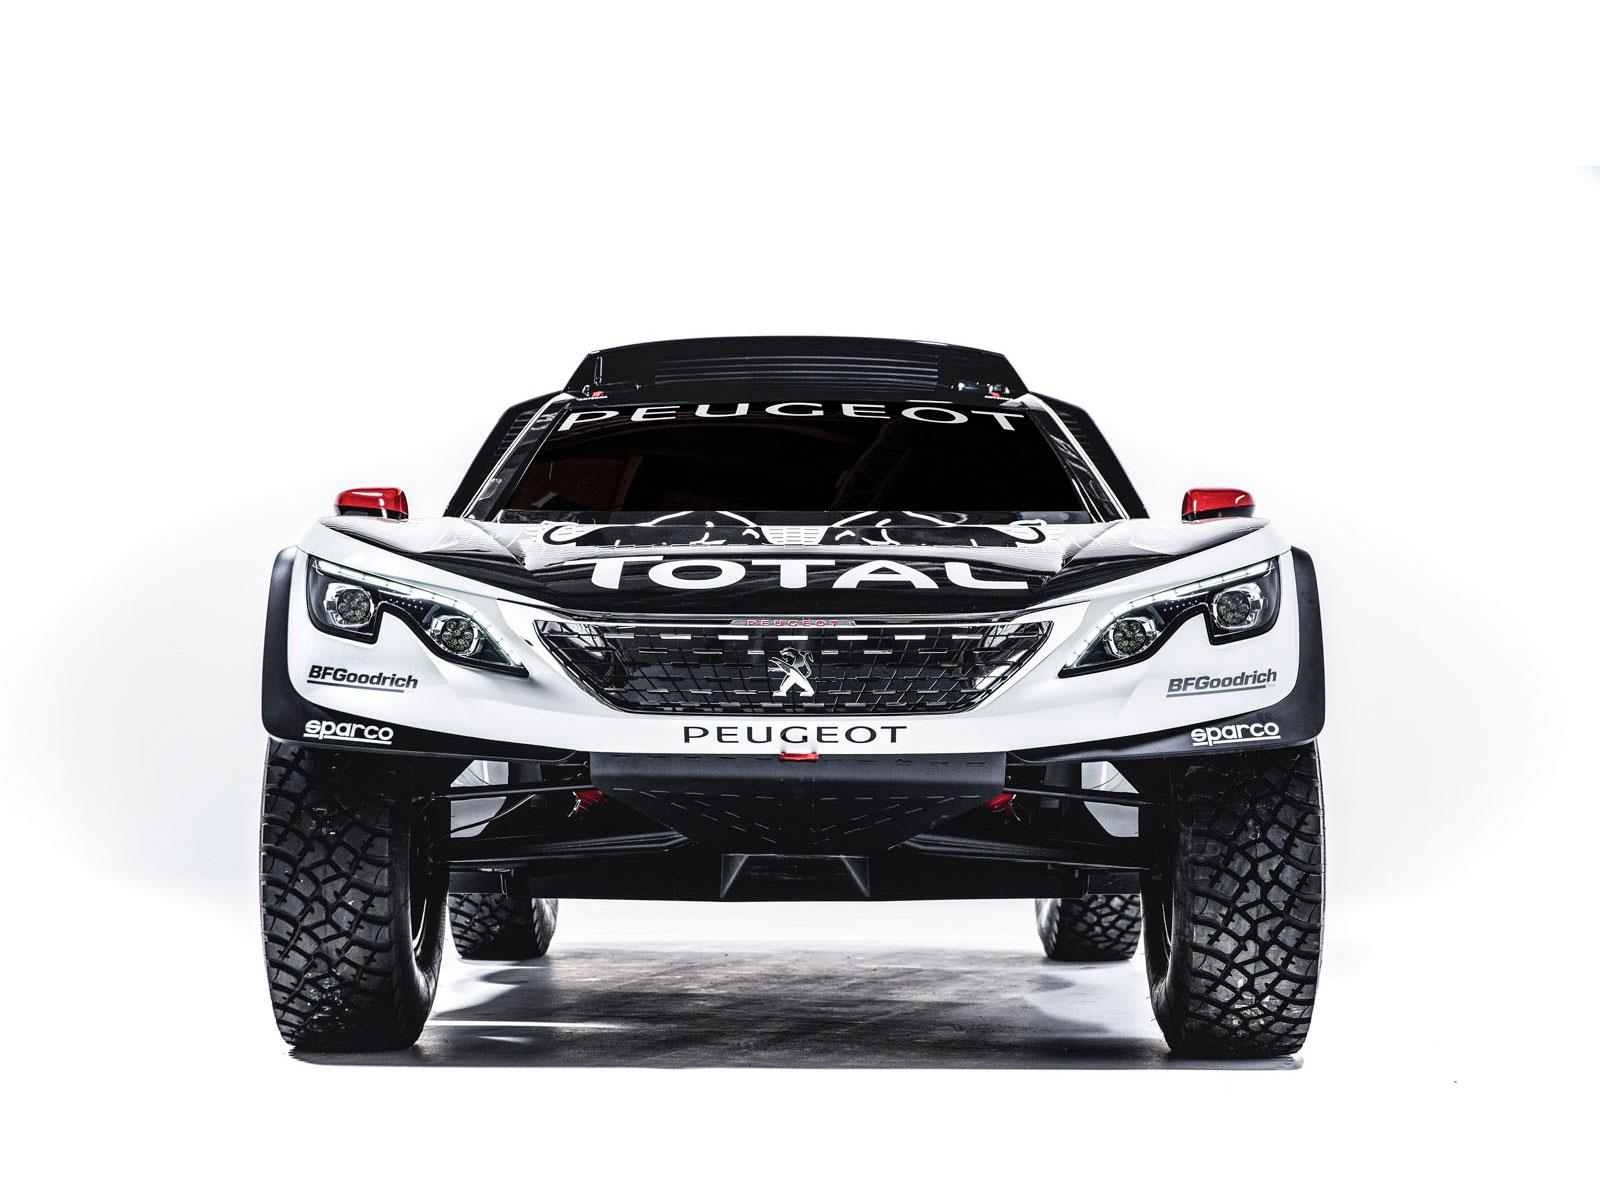 peugeot 3008 dkr maxi listo para el dakar. Black Bedroom Furniture Sets. Home Design Ideas